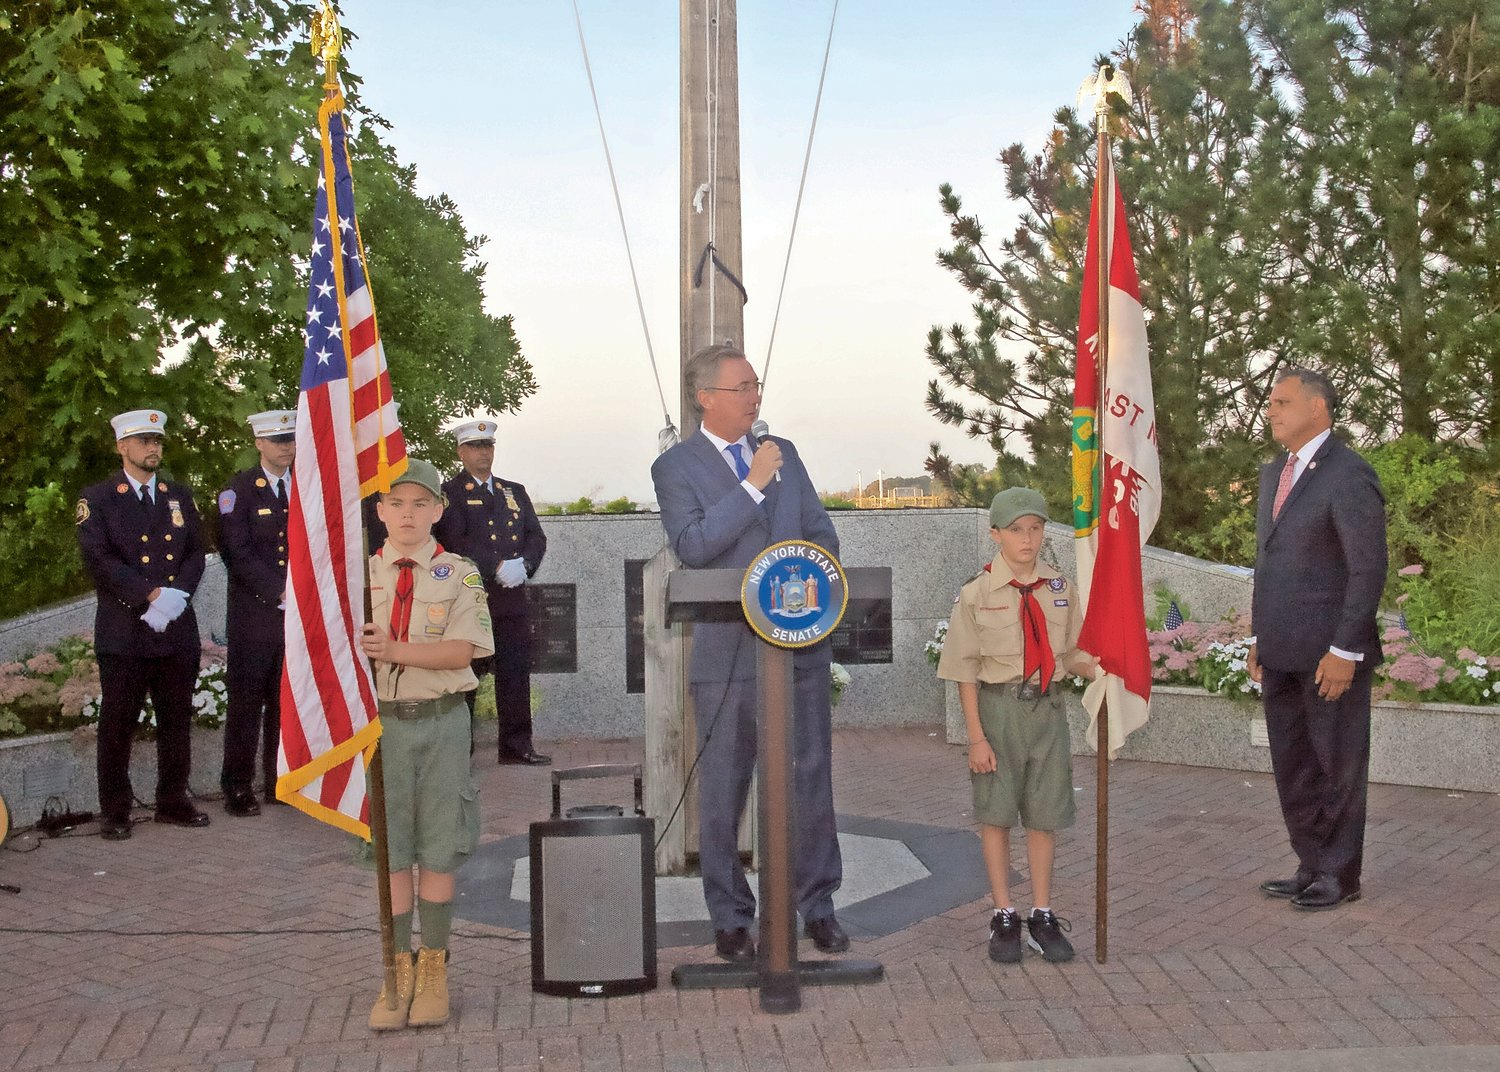 Sen. Jim Gaughran, with Boy Scouts from Troop 253, Brendan Murry, left and Andrew Taylor at his side, introduced Supervisor Joseph Saladino.